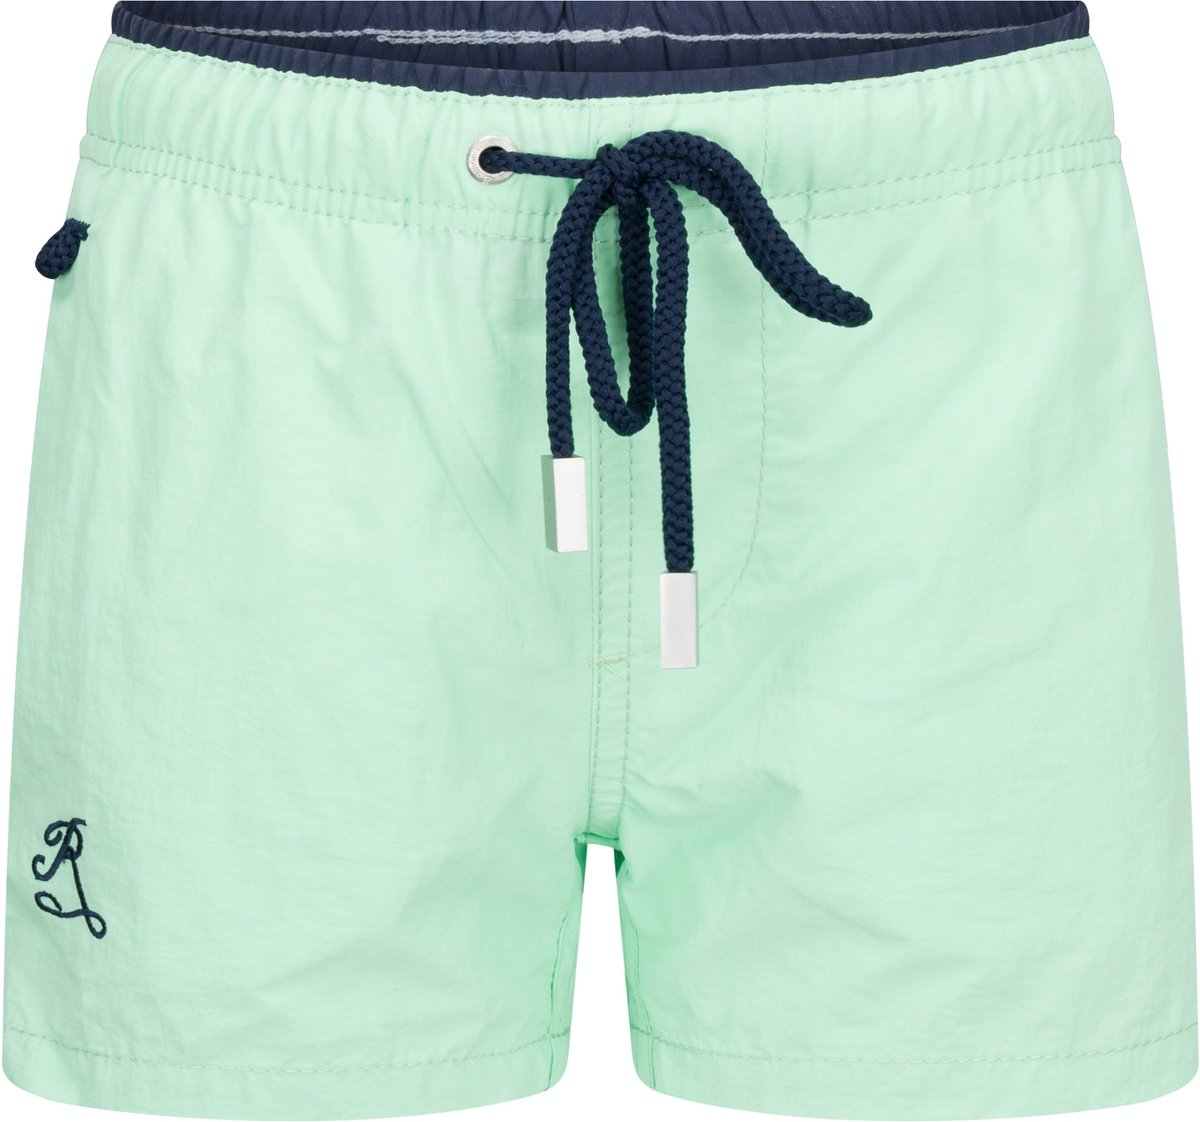 116 110 128 Rucanor   ~  Kinder Short  ~       Gr 140        Neu!